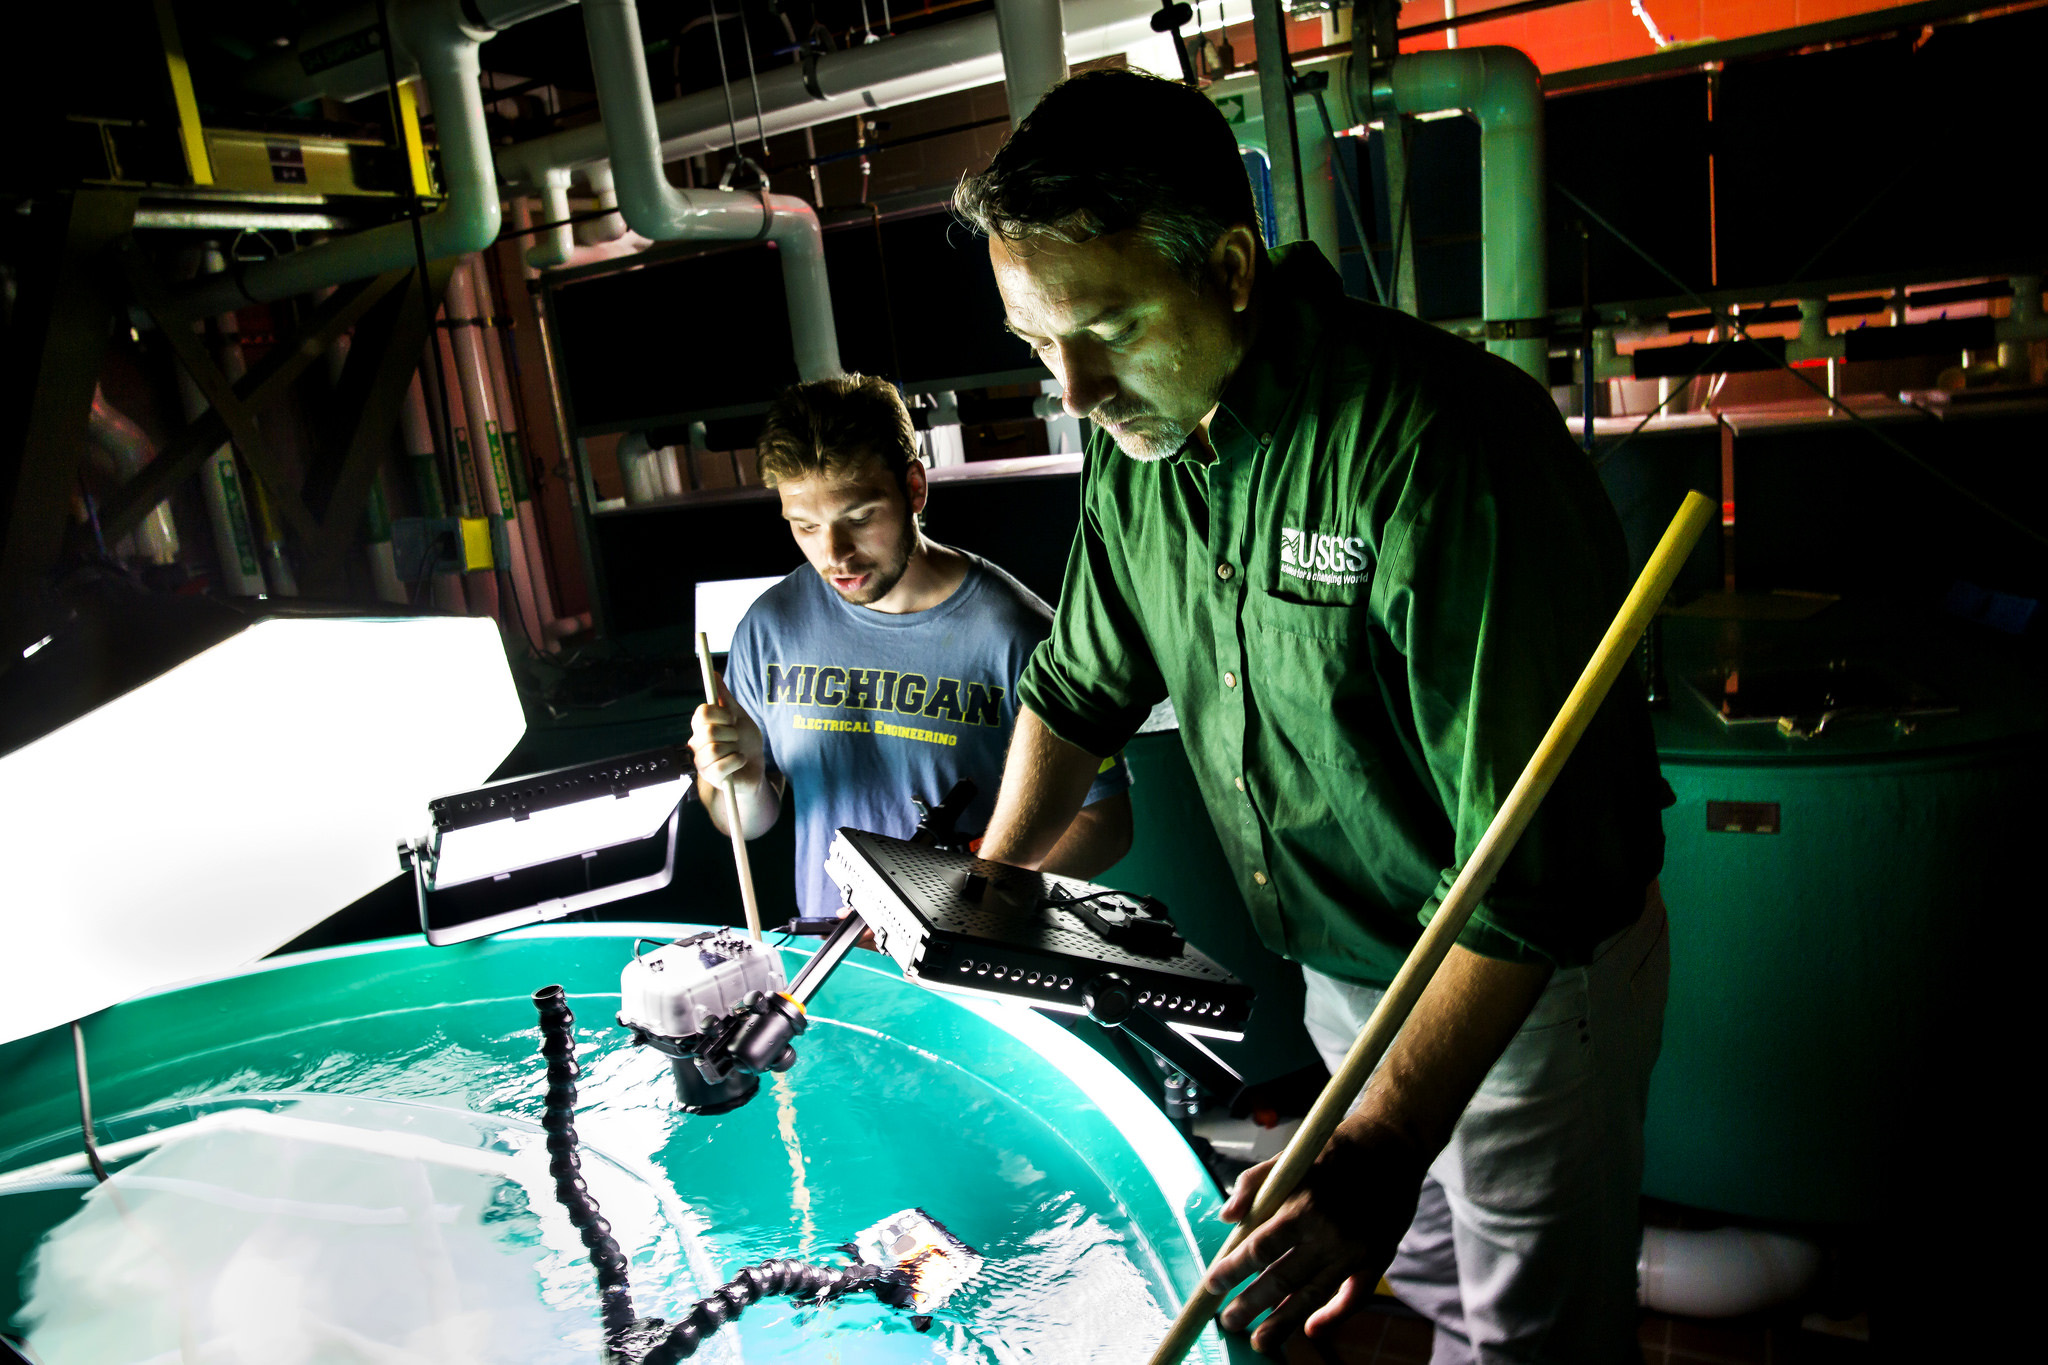 A photograph of researchers working on an underwater camera.